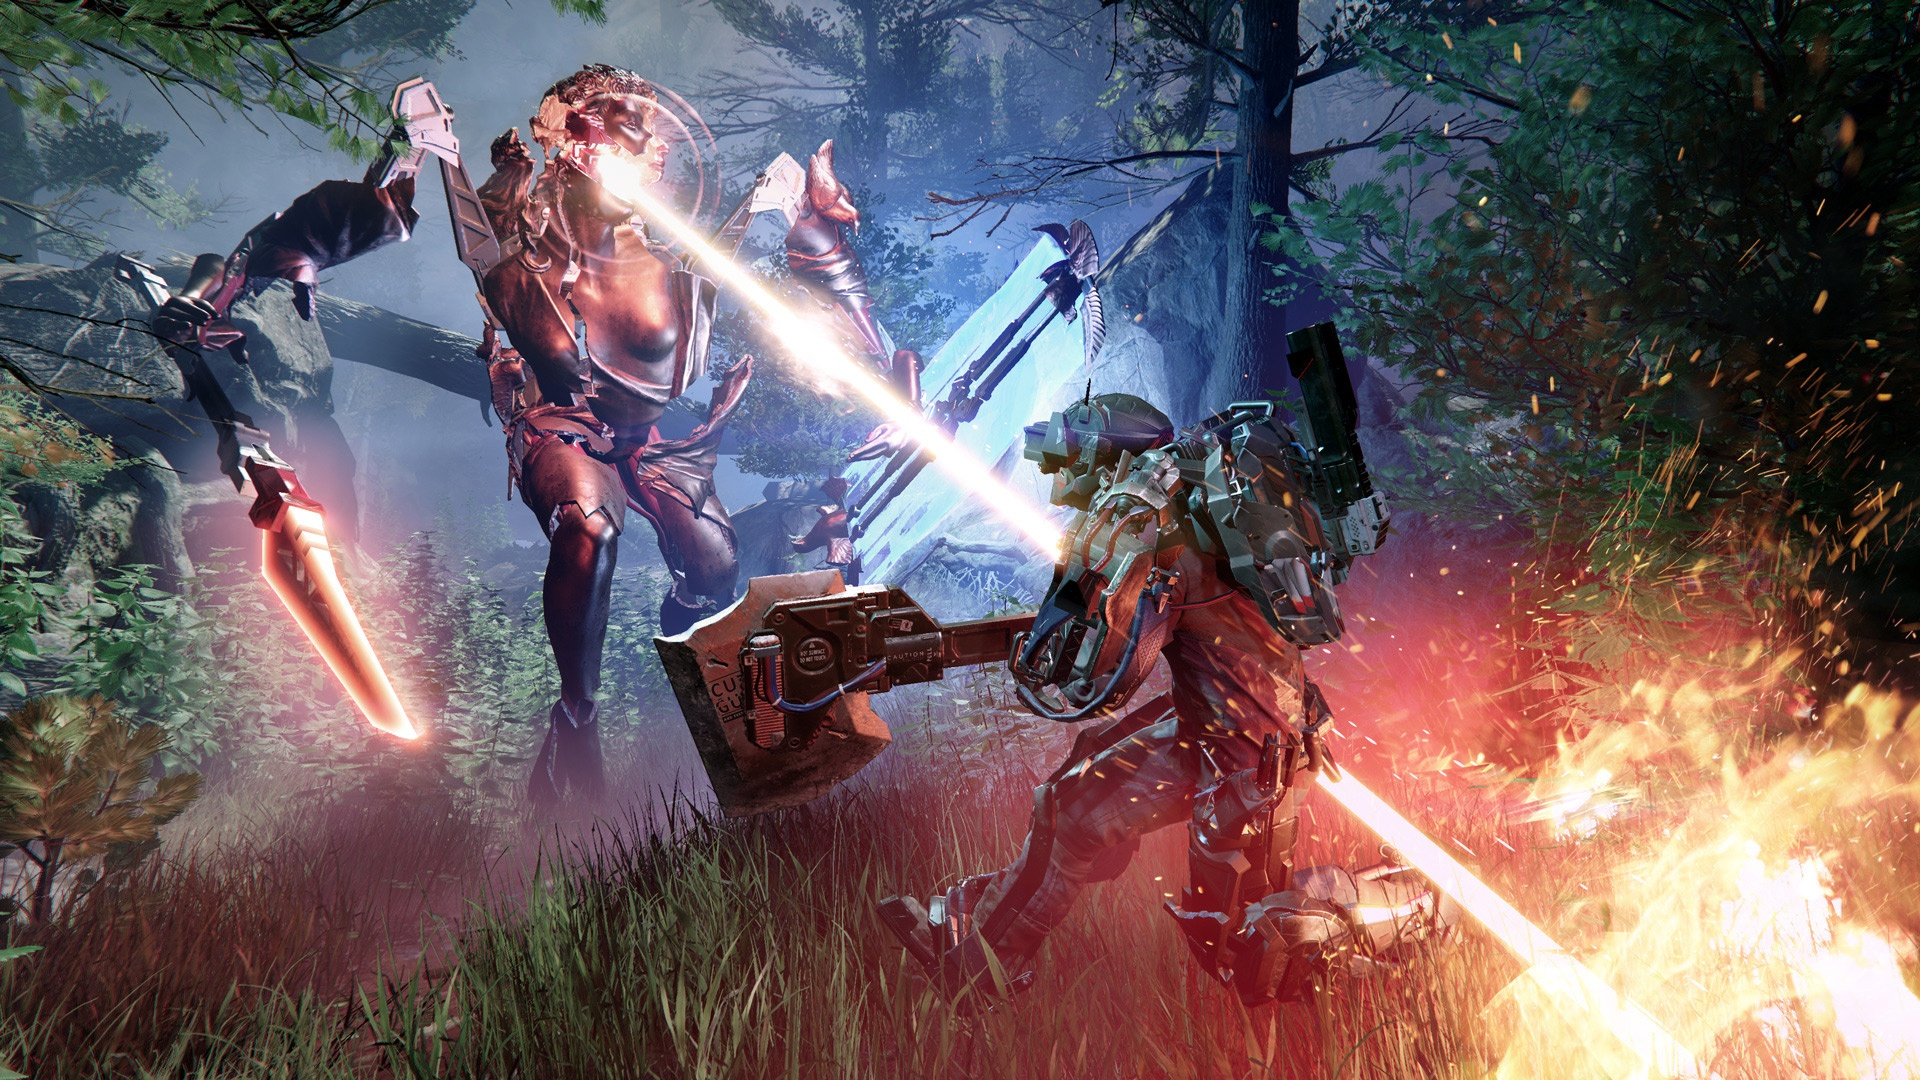 Action, Deck13, Deck13 Games, Focus Home Interactive, Rating 8/10, Role Playing Game, RPG, Souls-like, The Surge, The Surge 2, The Surge 2 Review, third-person, Violent, Xbox One, Xbox One Review